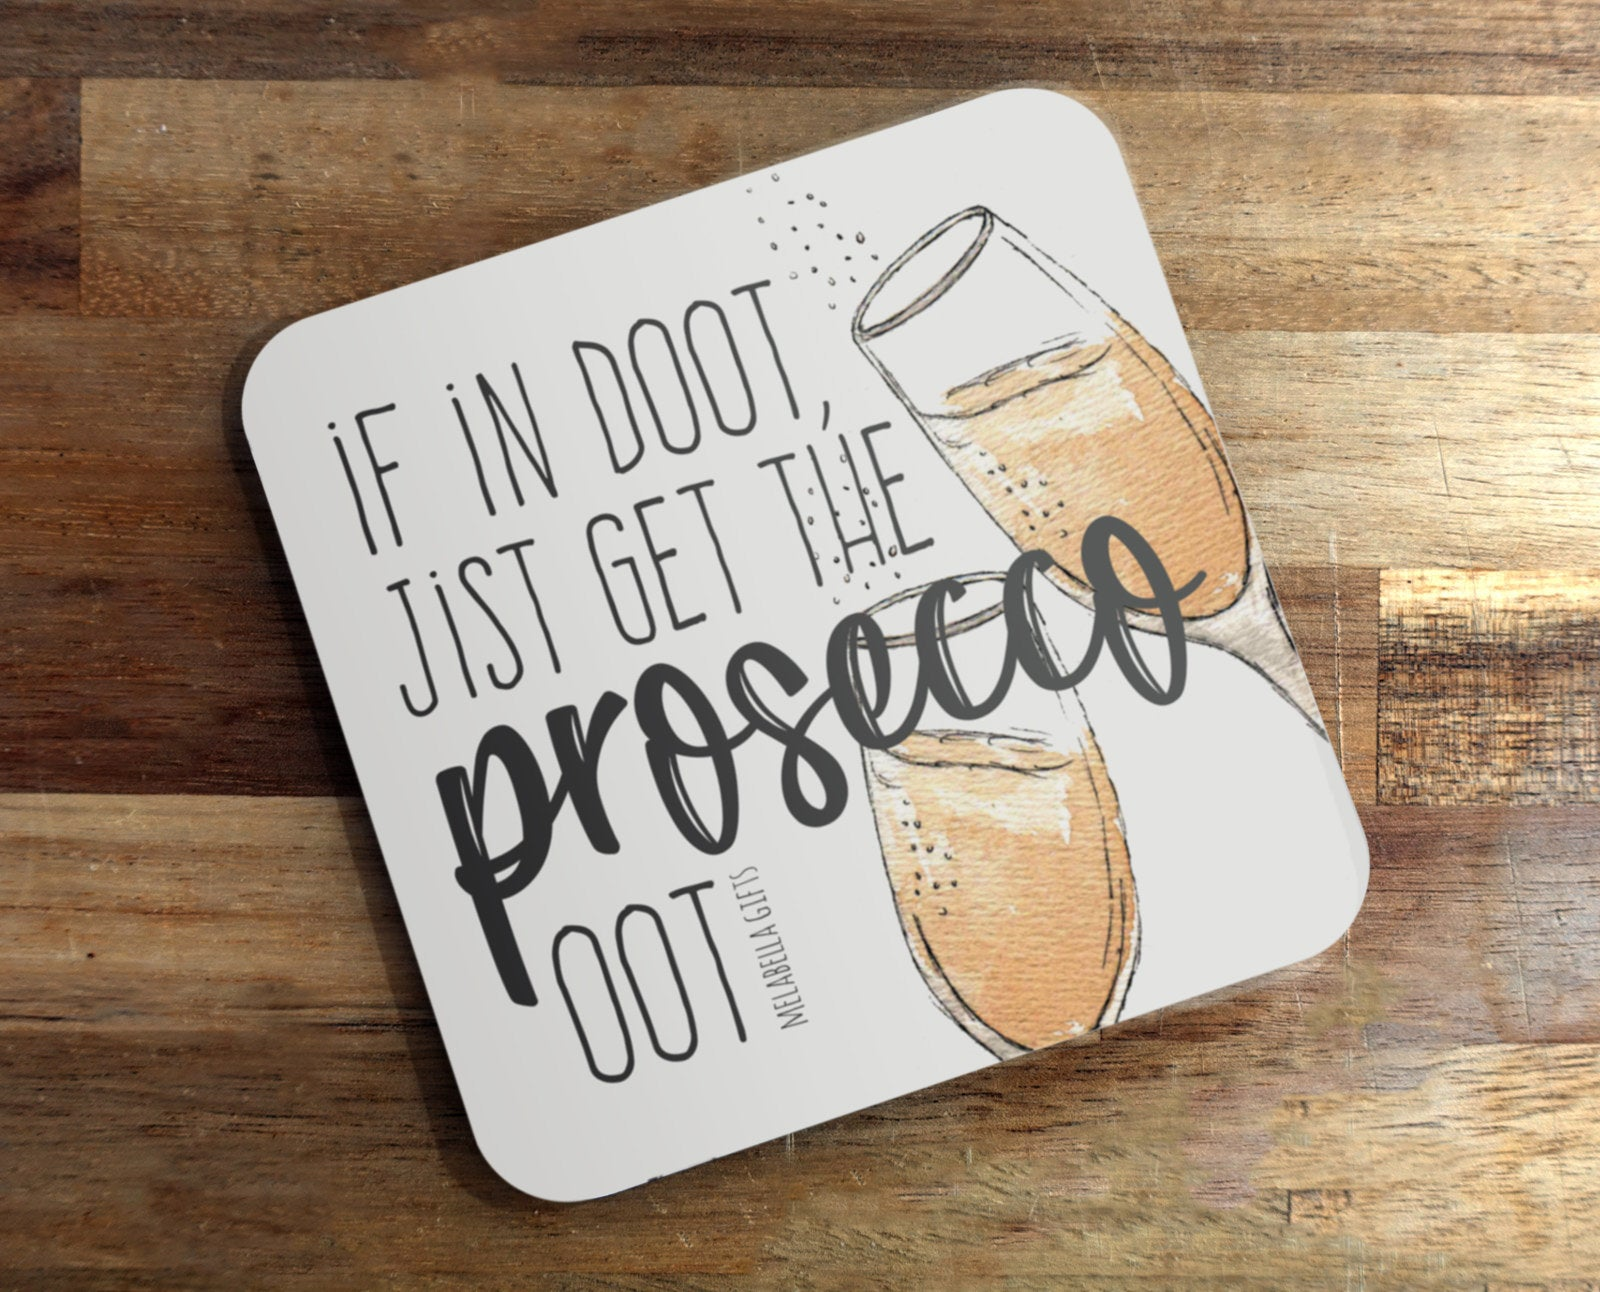 Doric Coaster, Scottish Coaster – Prosecco